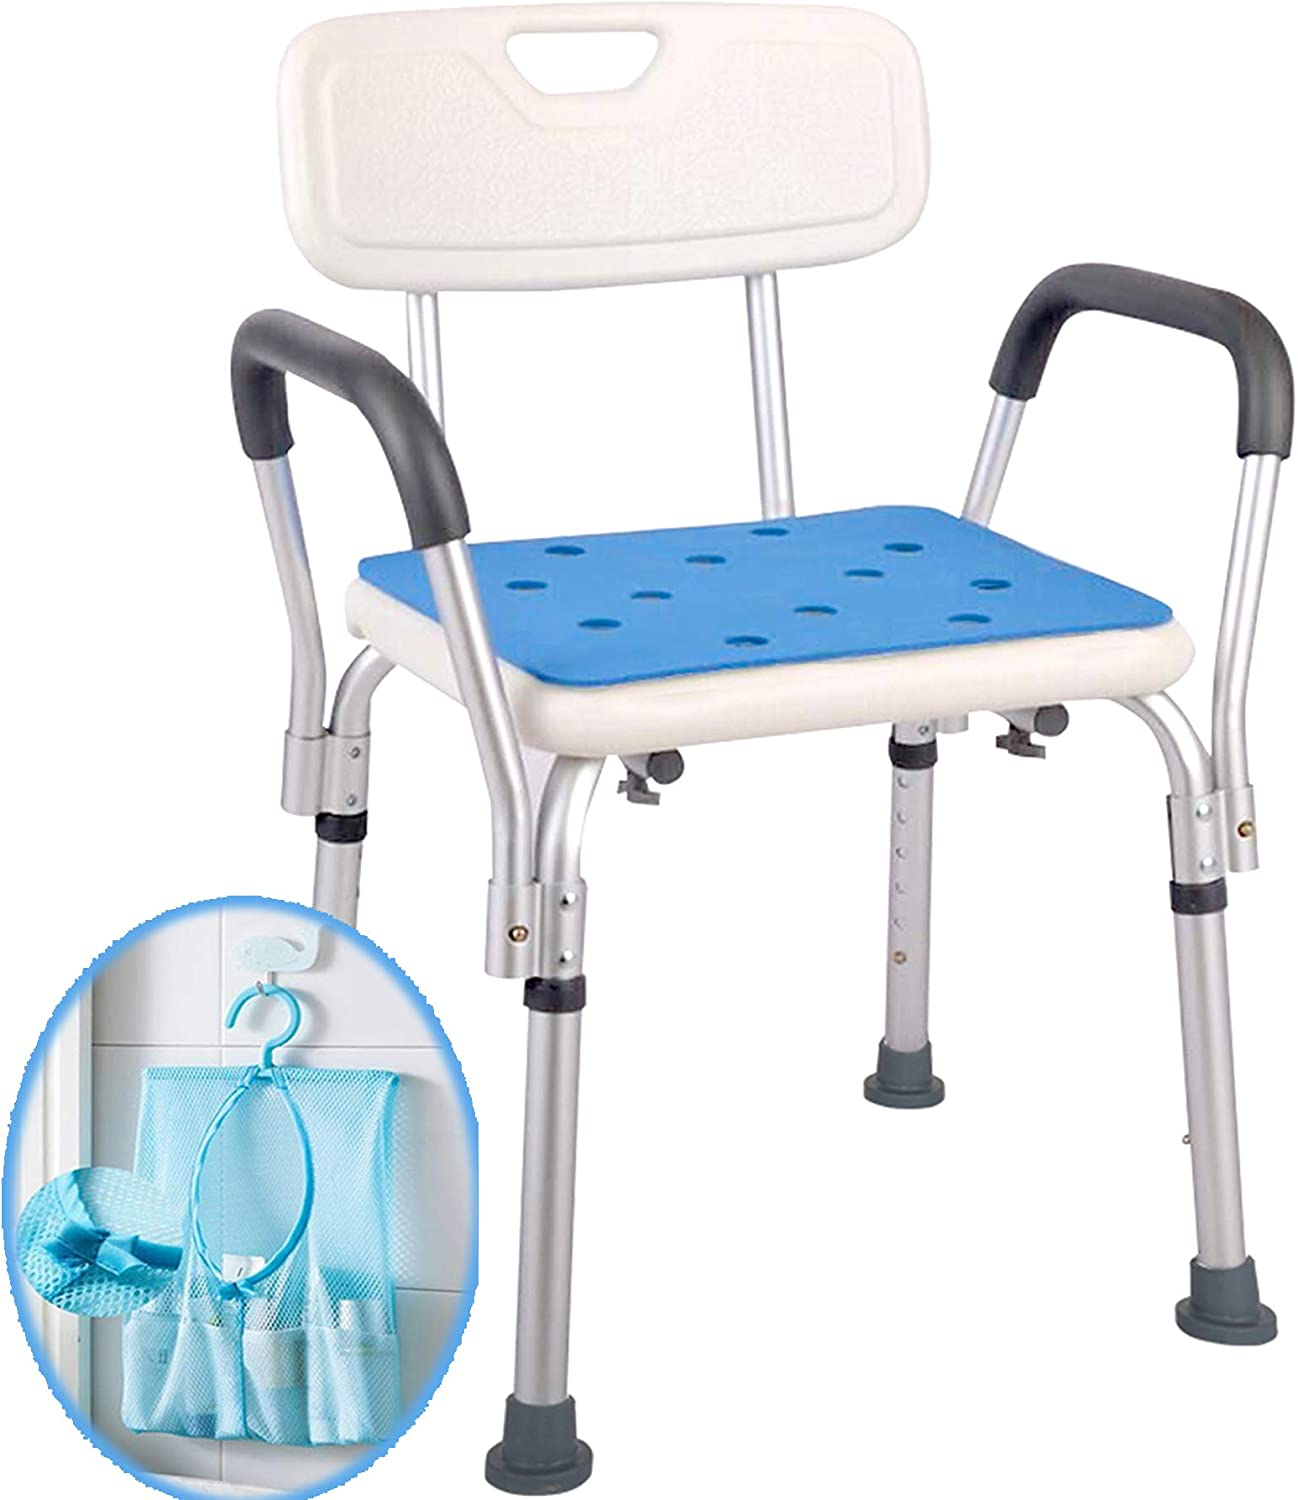 Shower Chair For Elderly With Rails Easily Adjustable Benches Tool Free Assembly Seat With Arms Back For Seniors Portable Handicap Bathtub Seats For Adults White Kitchen Dining